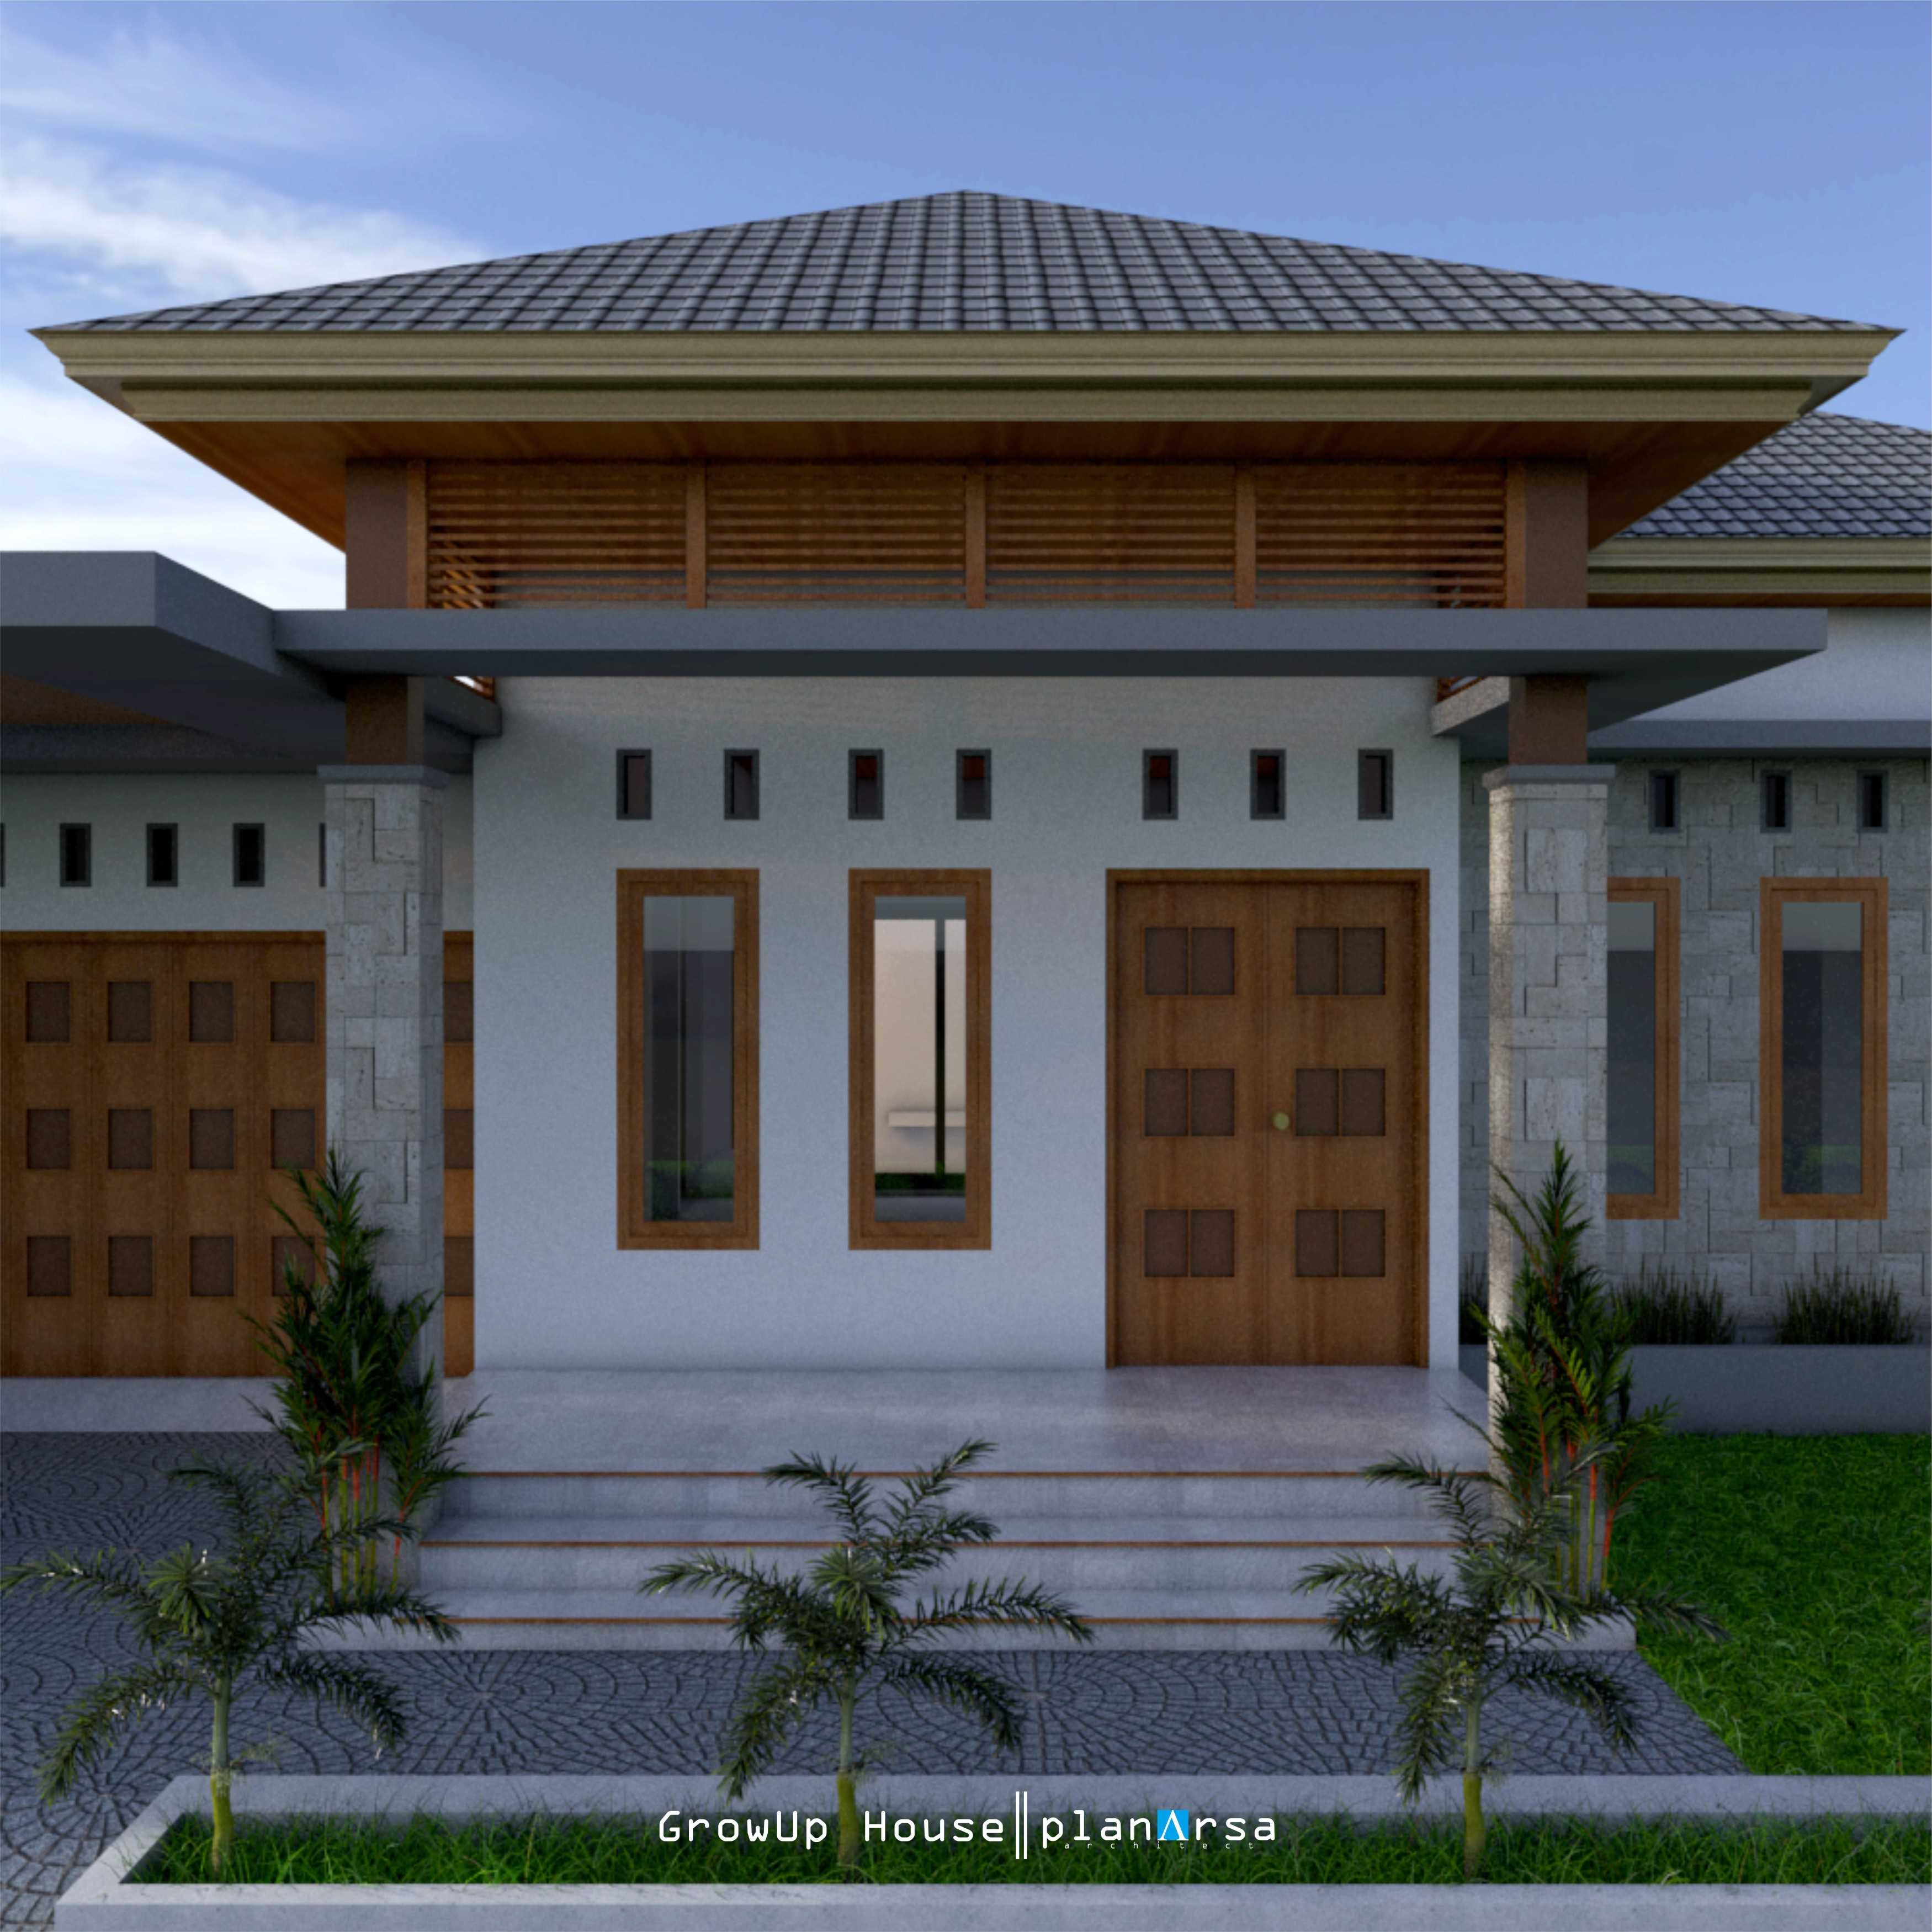 Planarsa Architect Growup House Aceh, Indonesia Aceh, Indonesia Planarsa-Architect-Growup-House   79255